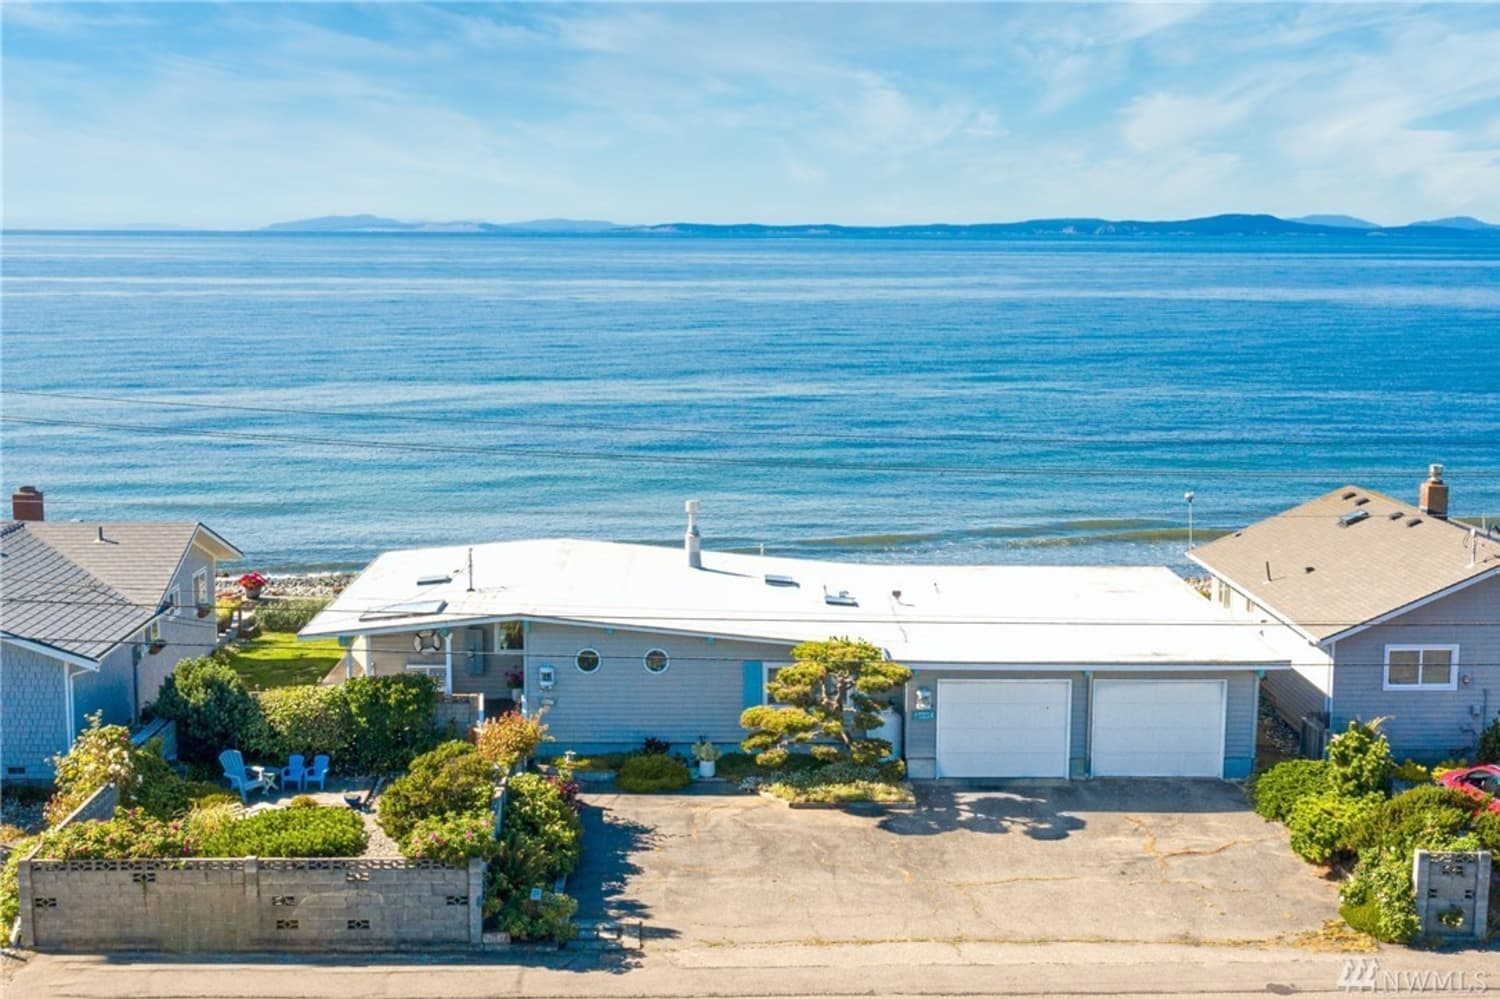 Look Inside: There's a '60s Beach House for Sale in the Pacific Northwest